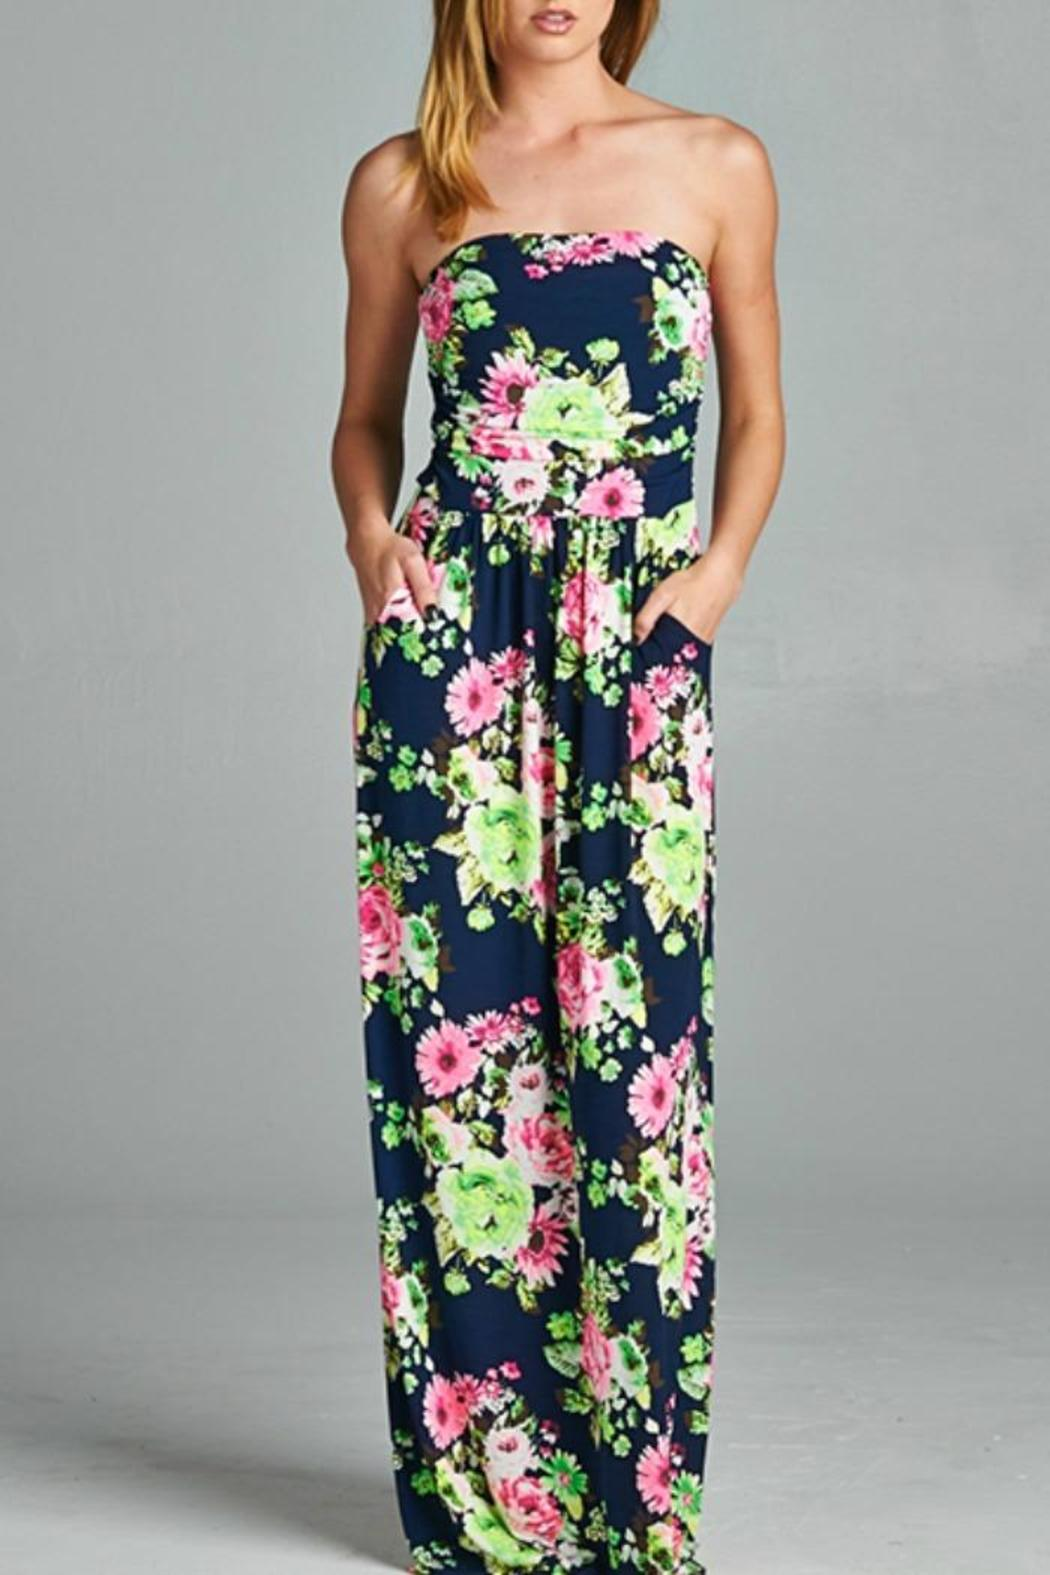 Blush Boutique Aloha Maxi Dress - Main Image